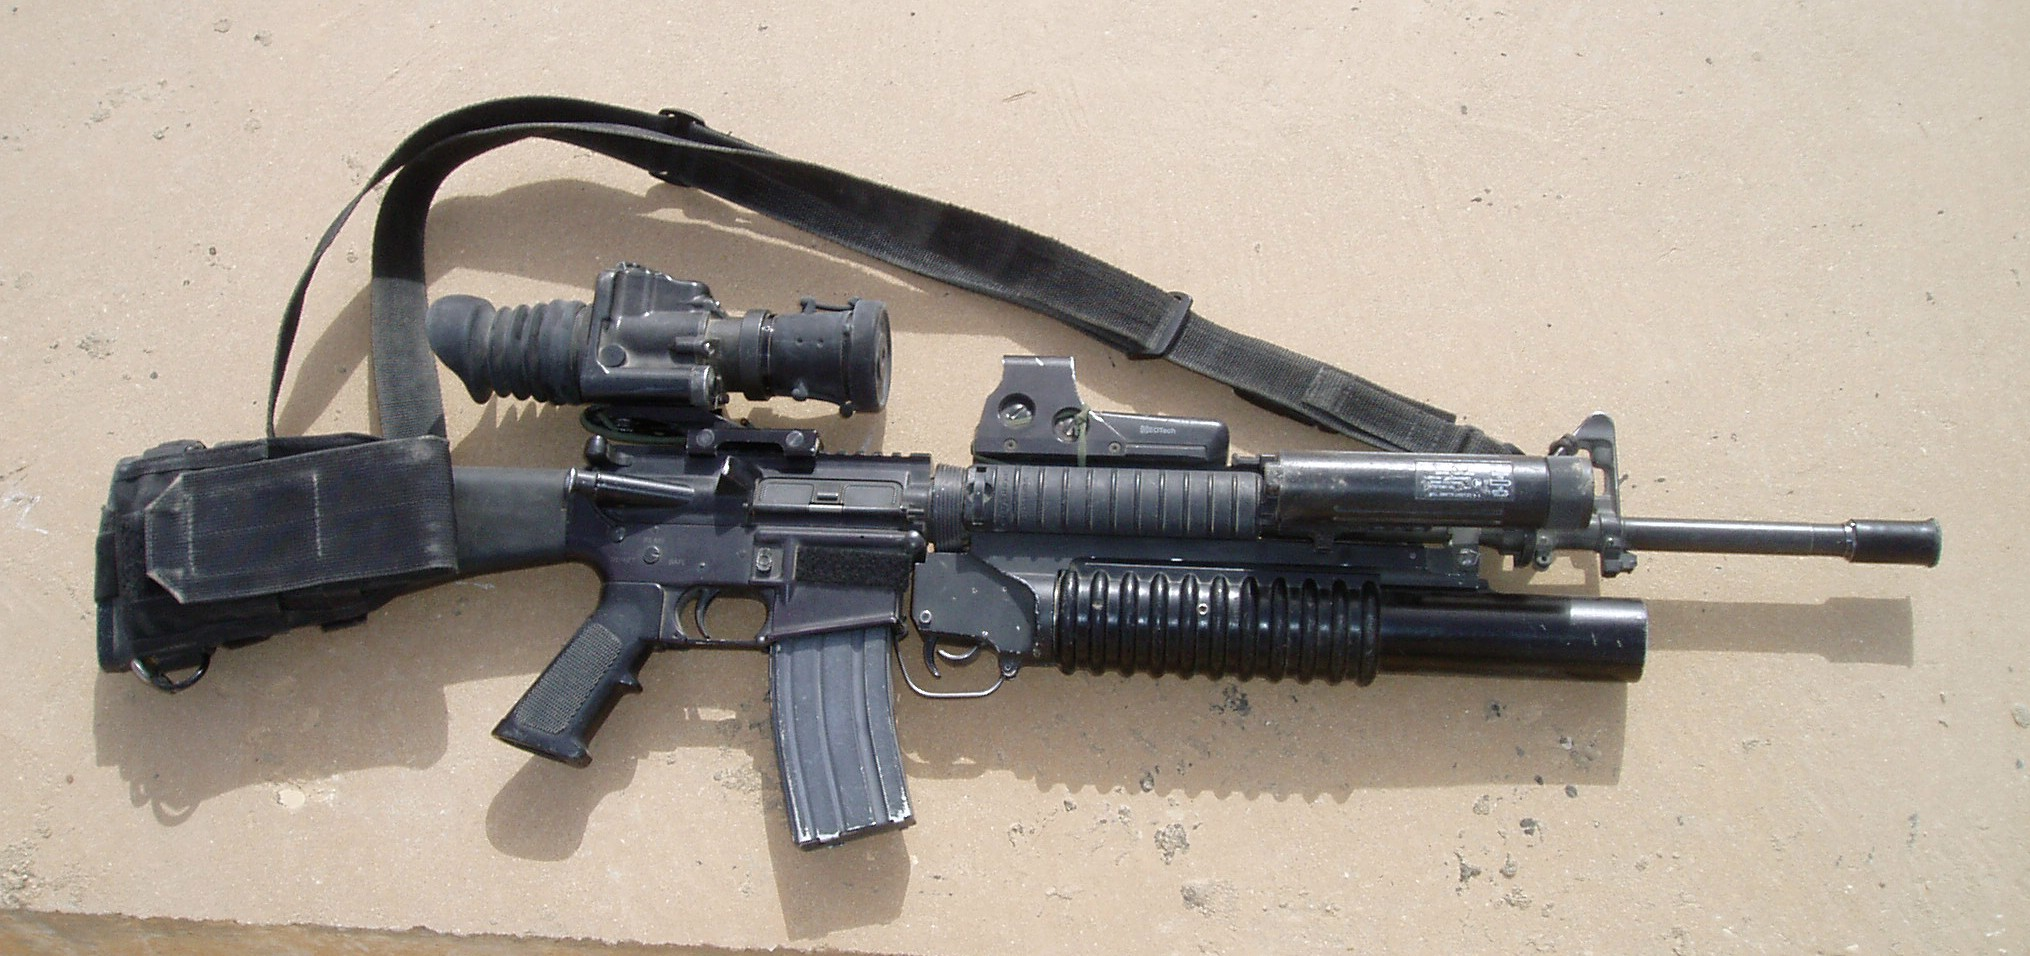 File:M16A4 (nukeit1).jpg - Wikimedia Commons